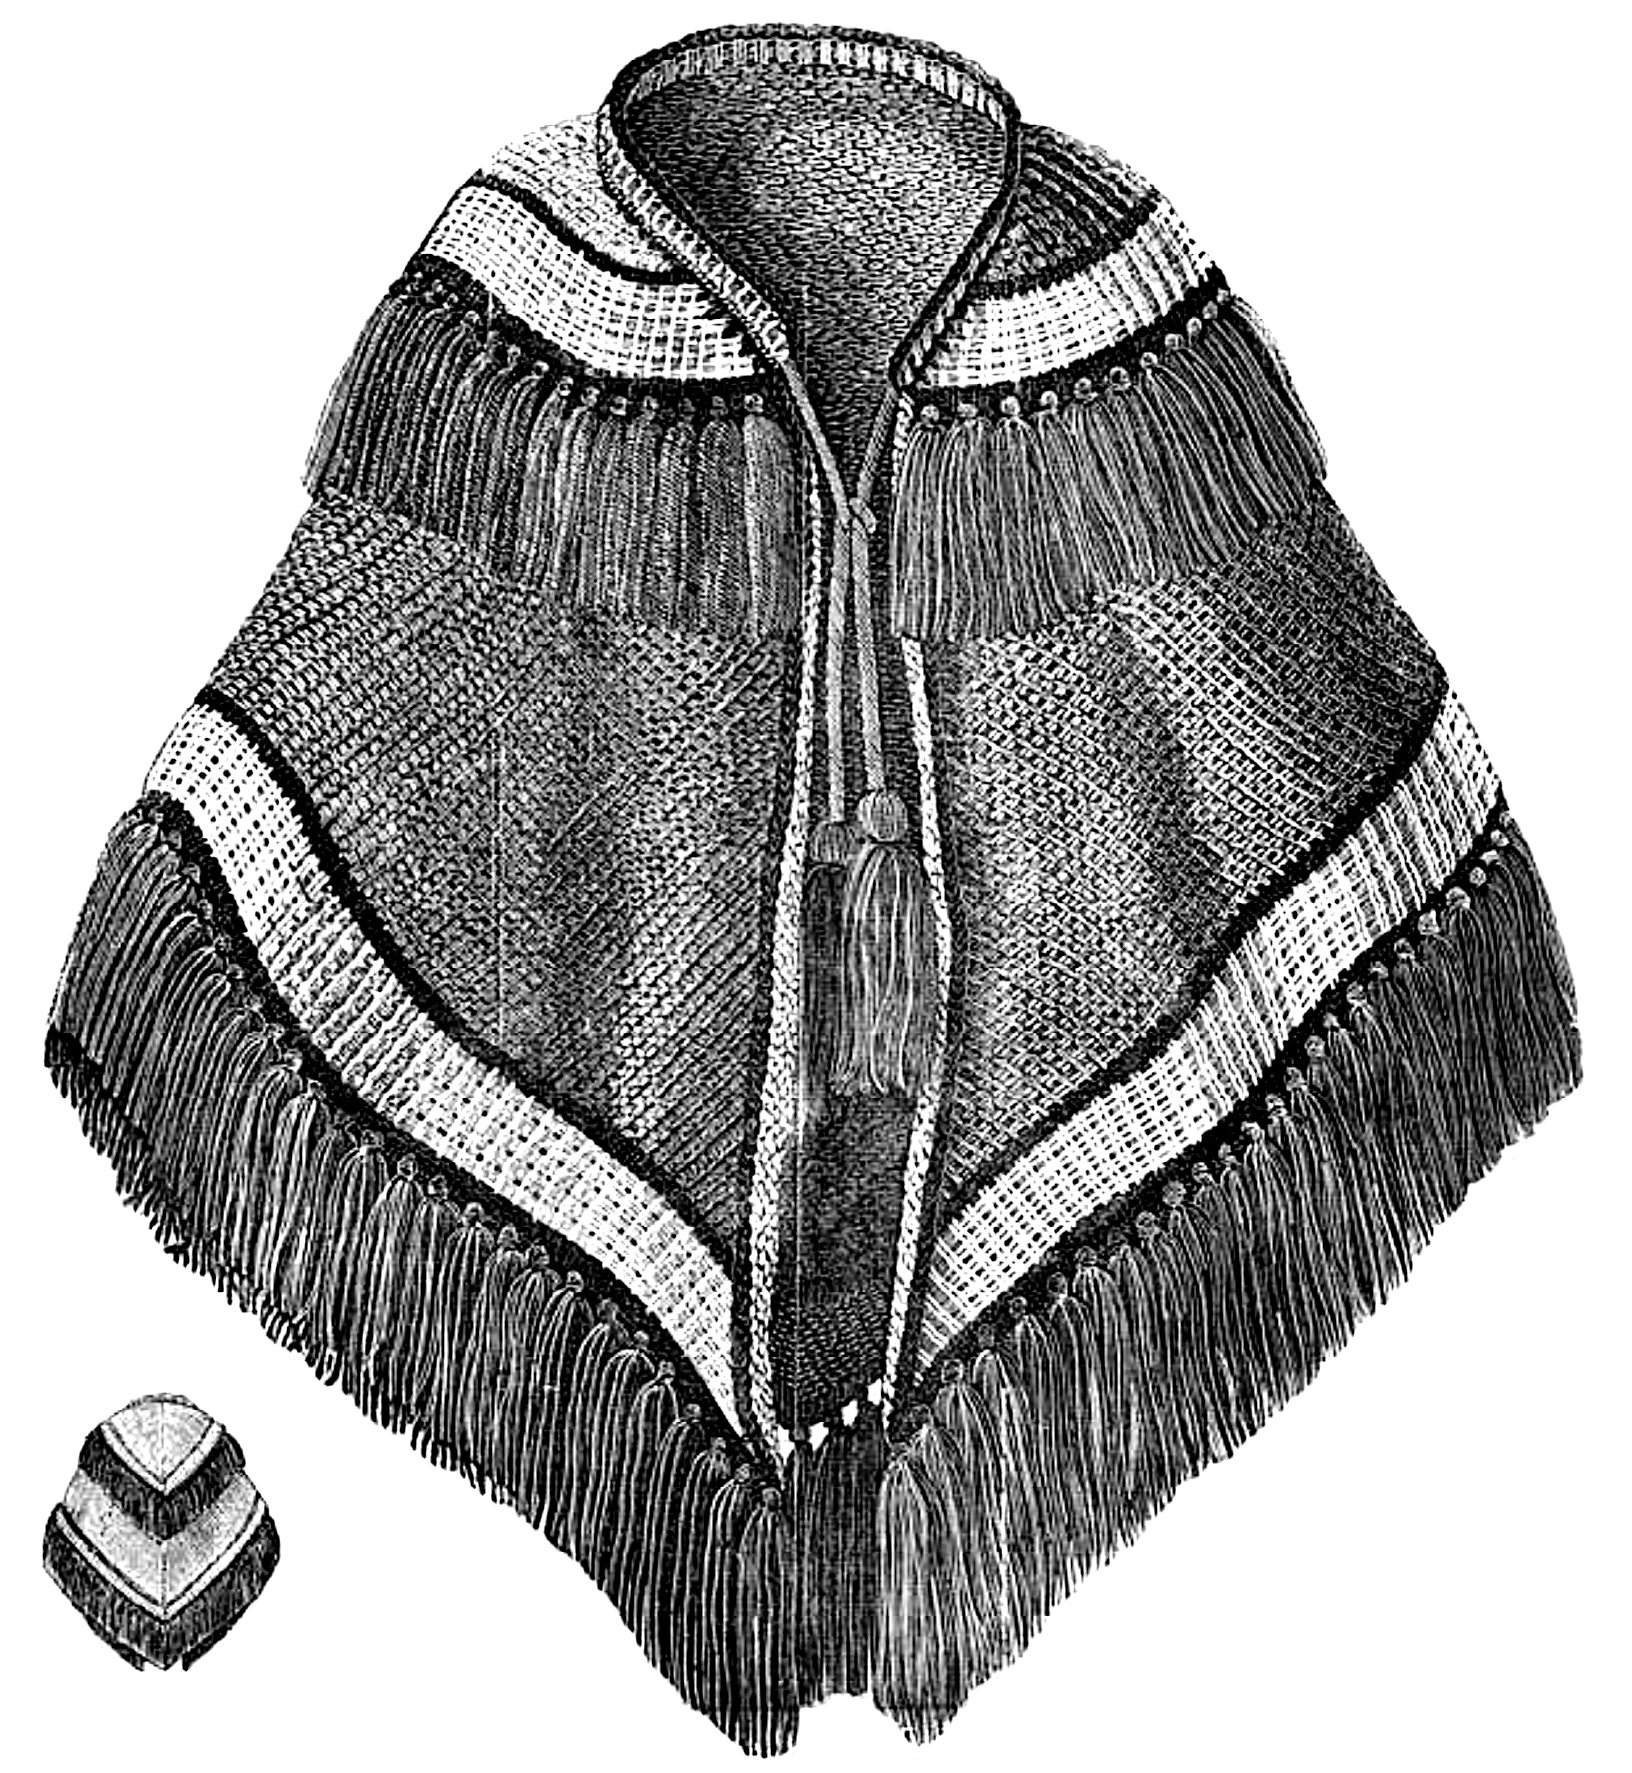 German 1858 cape